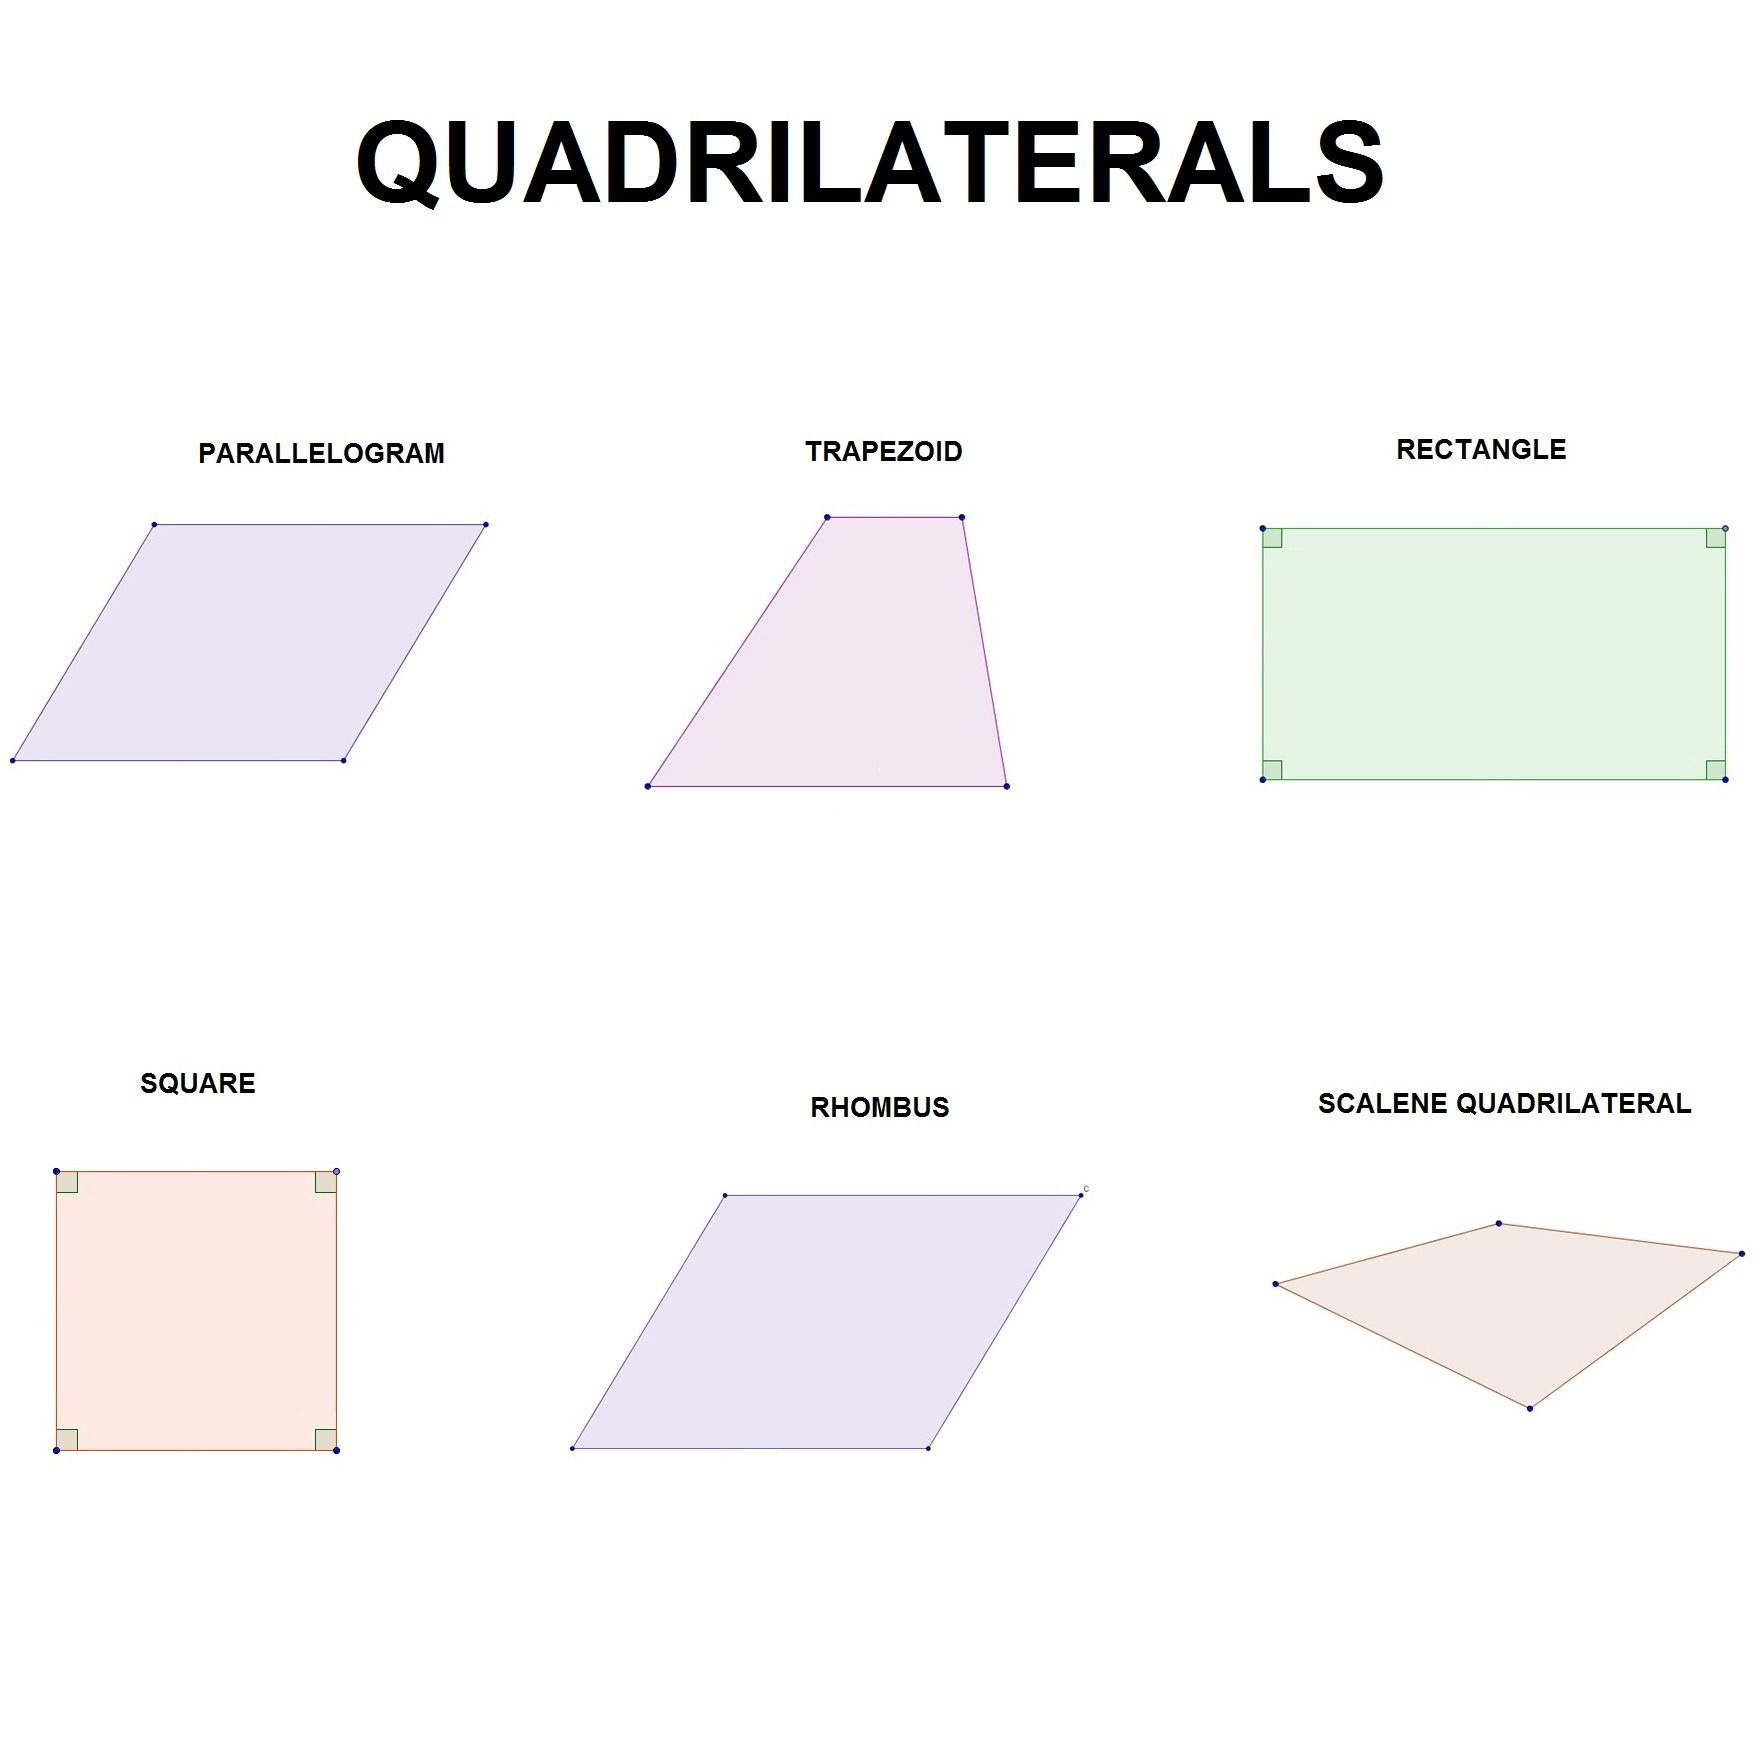 Worksheet Types Of Quadrilaterals Worksheet Grass Fedjp